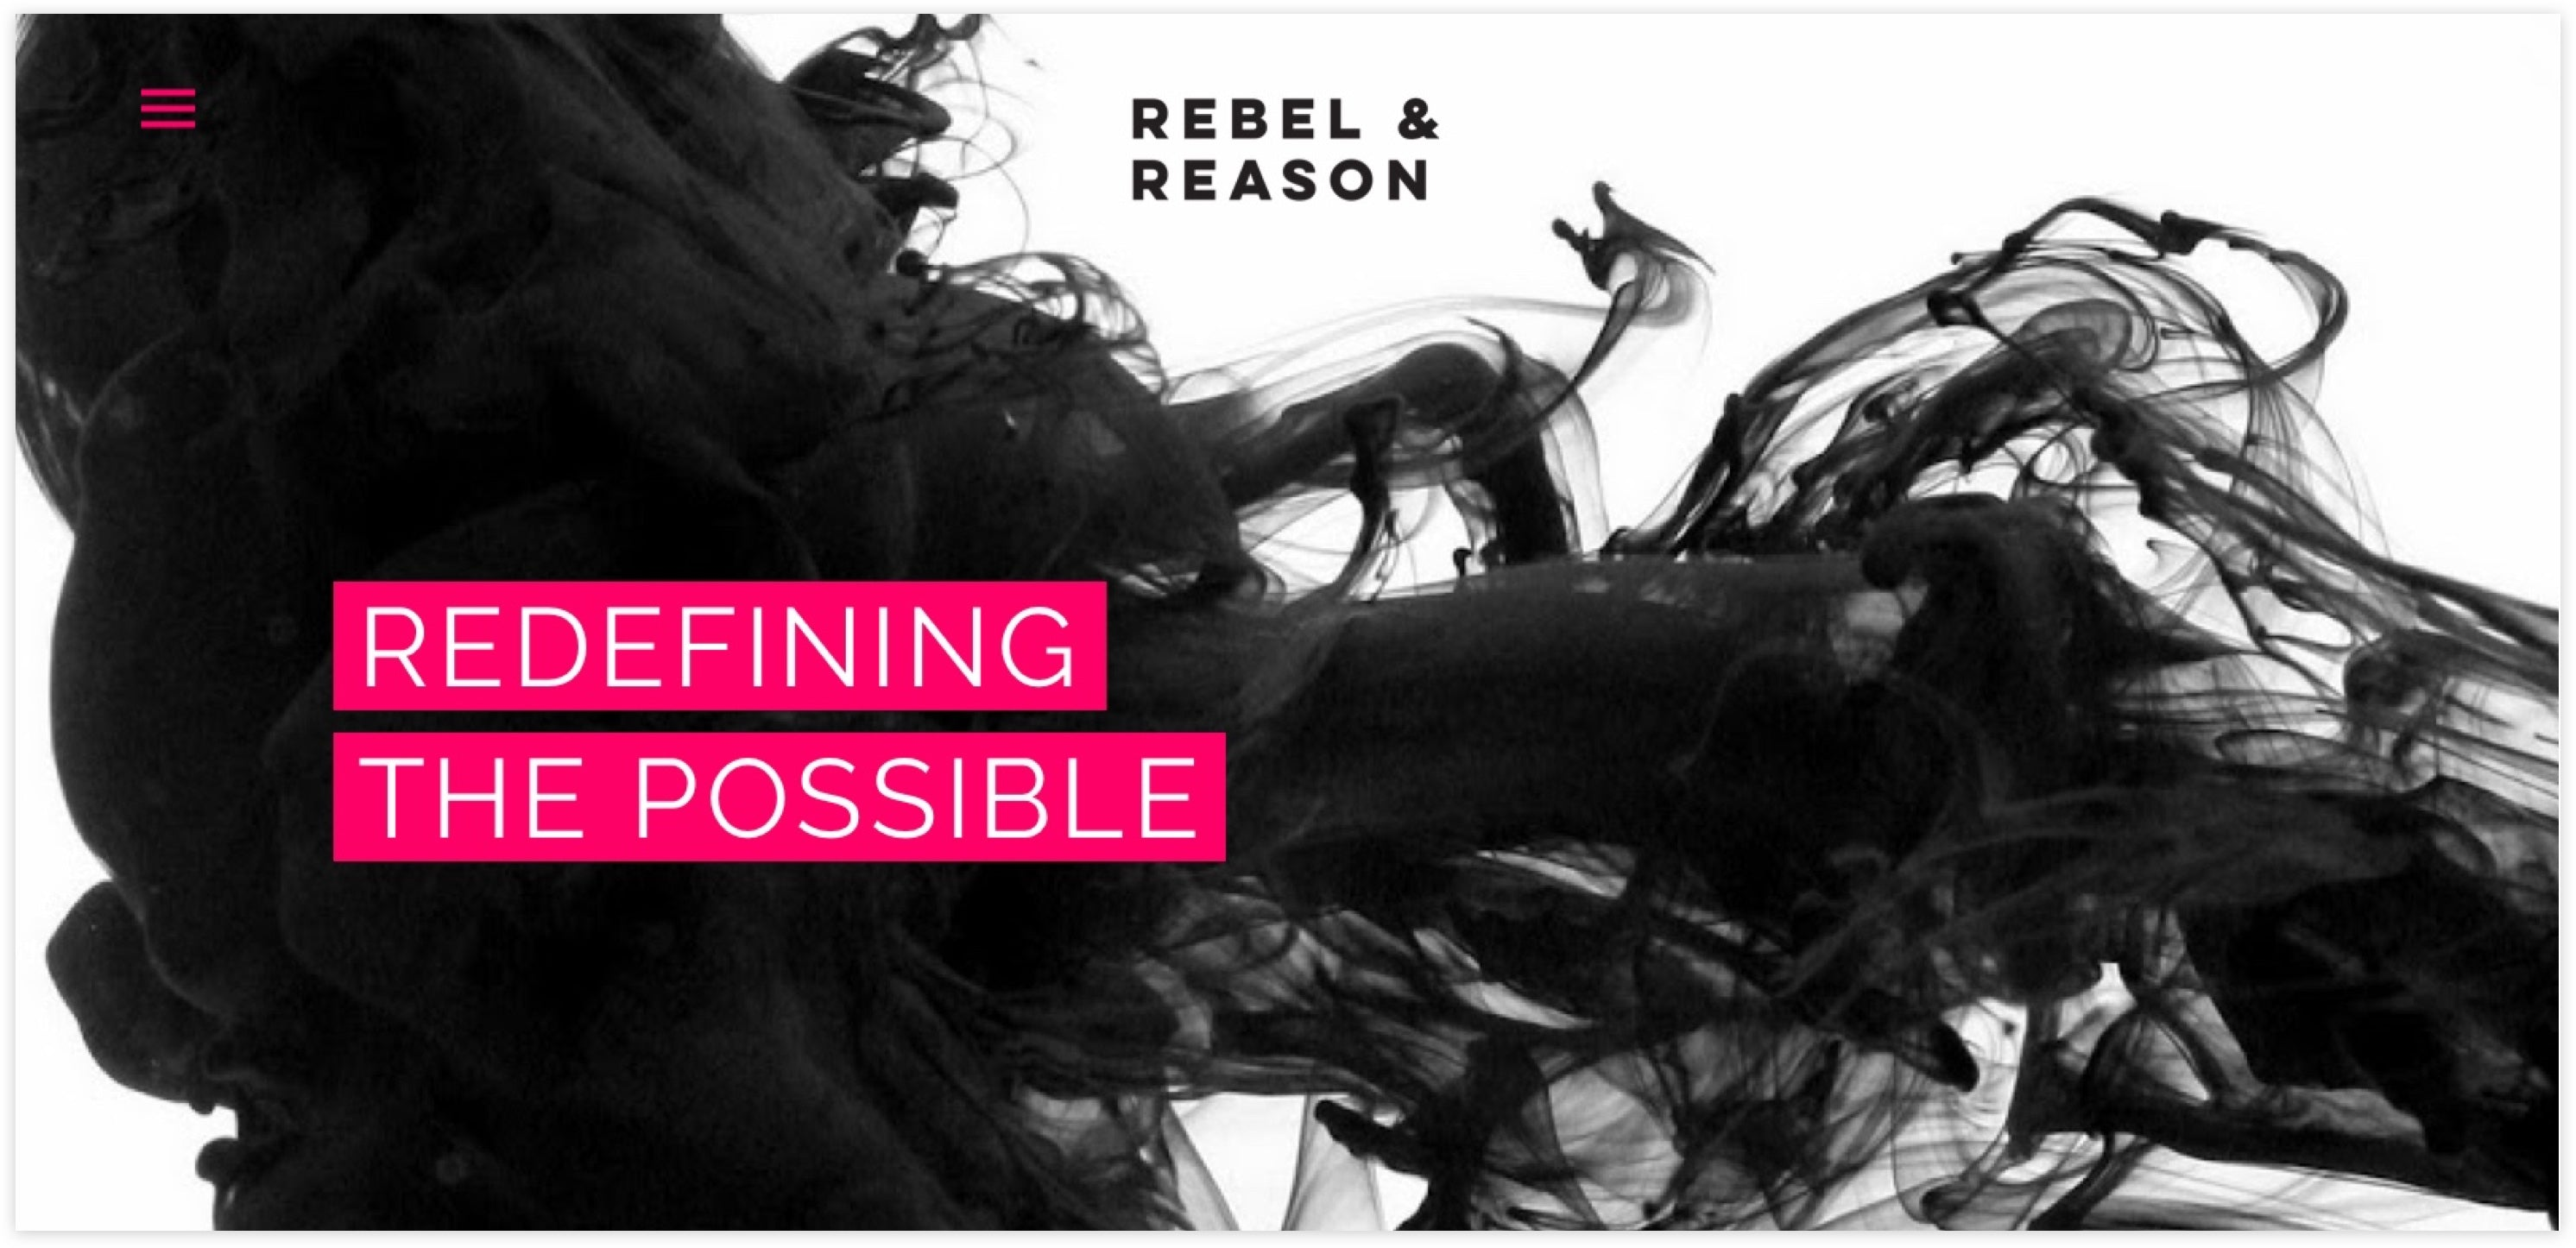 Rebel + Reason Homepage, Custom Shopify Site, Rebellious and Independent